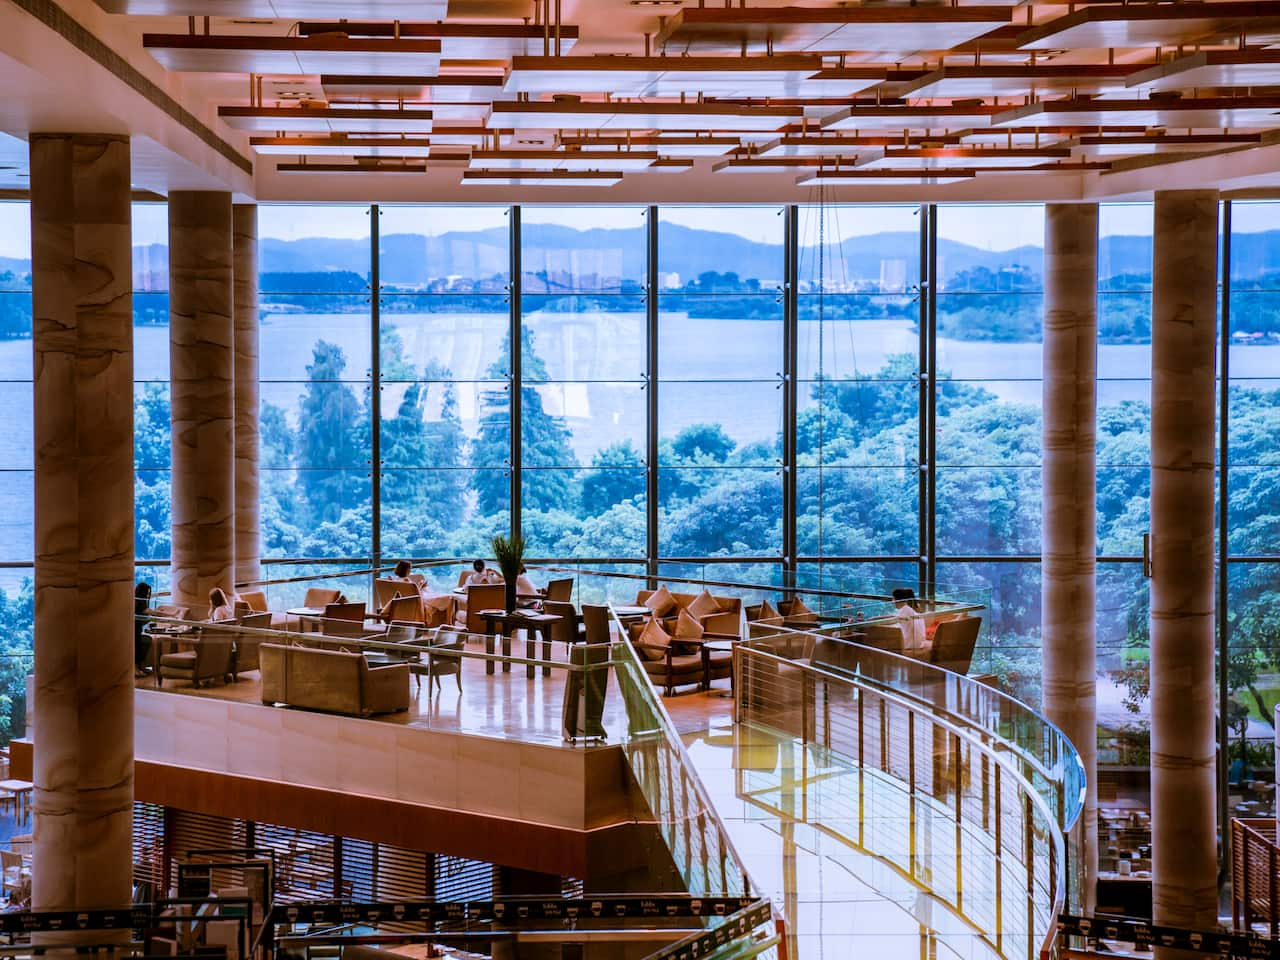 Lobby Lounge with view of the lake